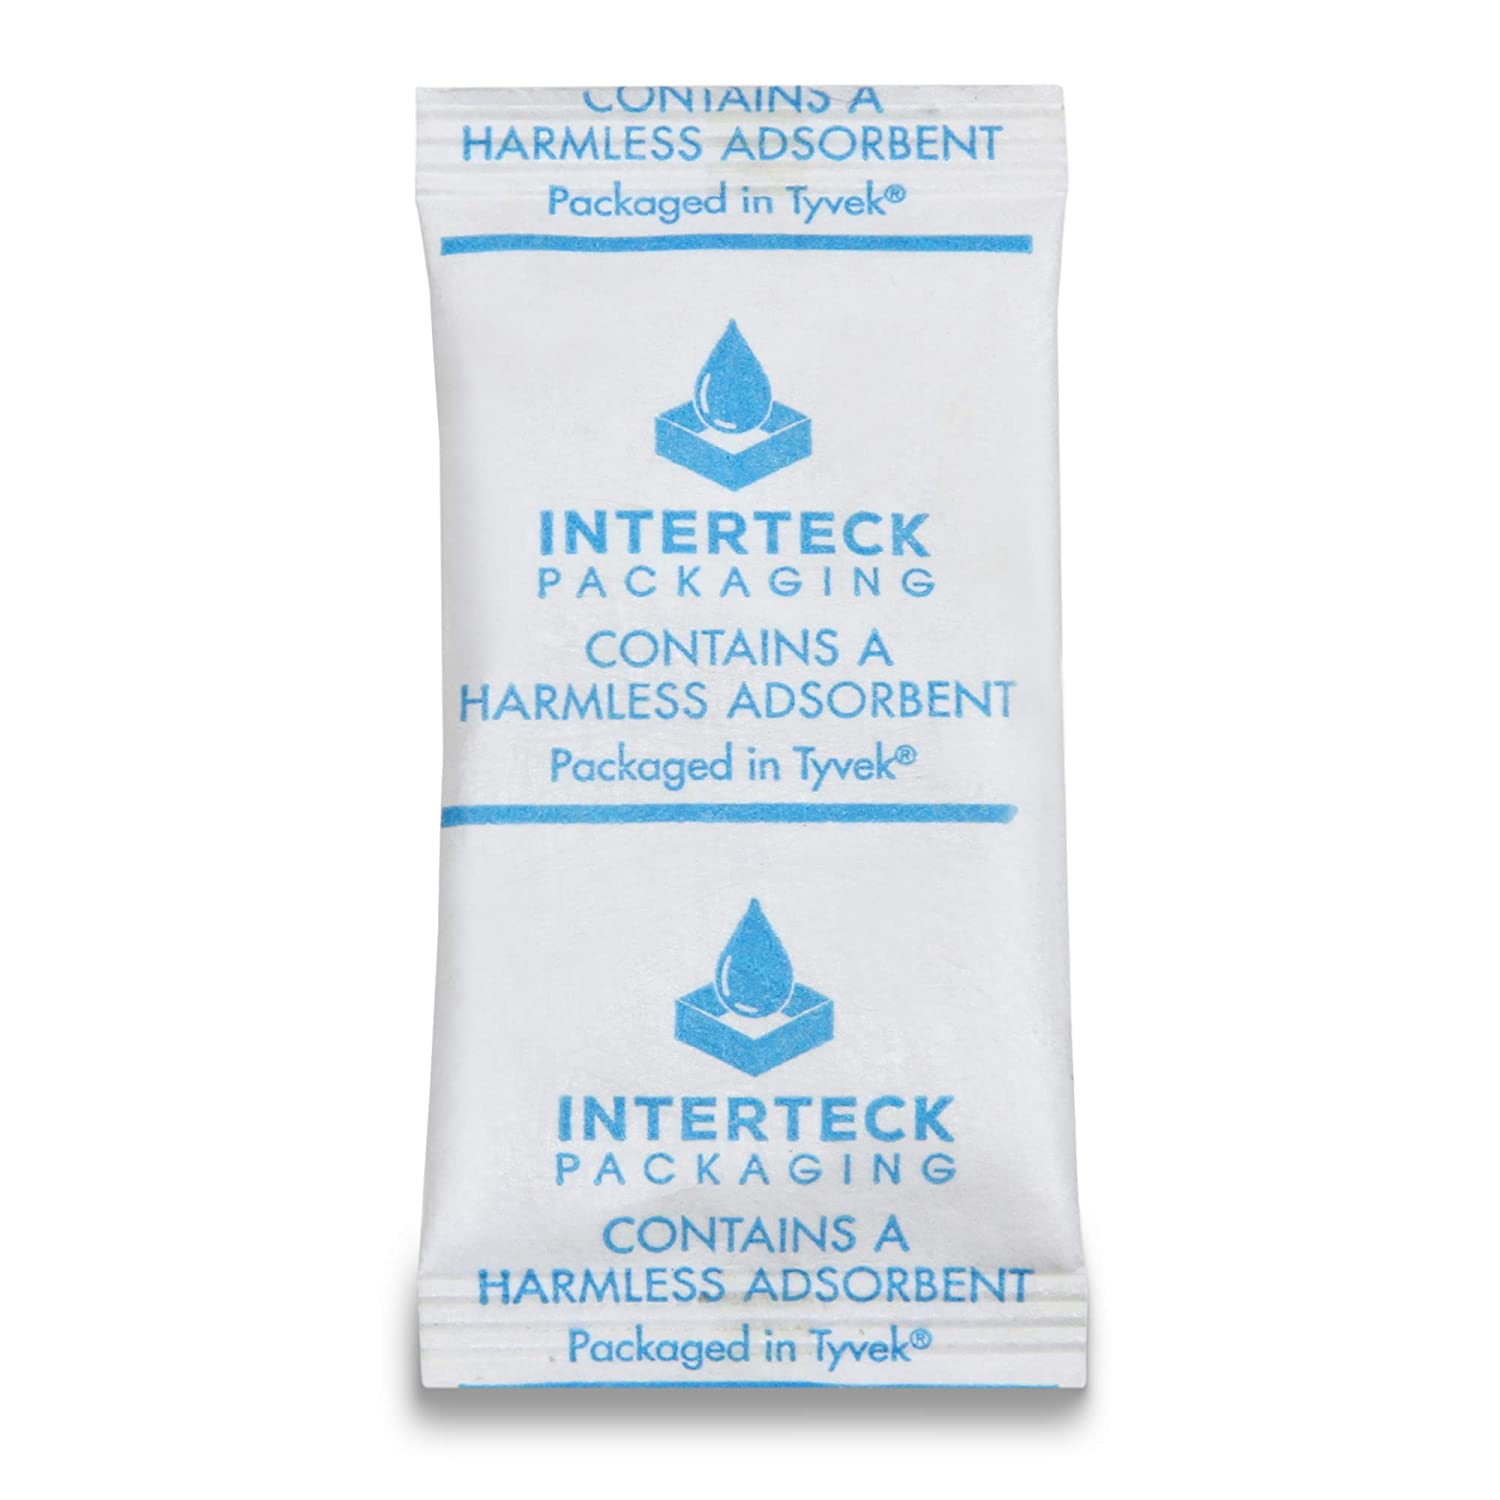 INTERTECK PACKAGING 3 Gram Silica Gel Packets - Rechargeable Desiccant Packets and Dehumidifiers (Non-Indicating, Tyvek 500 Pack)